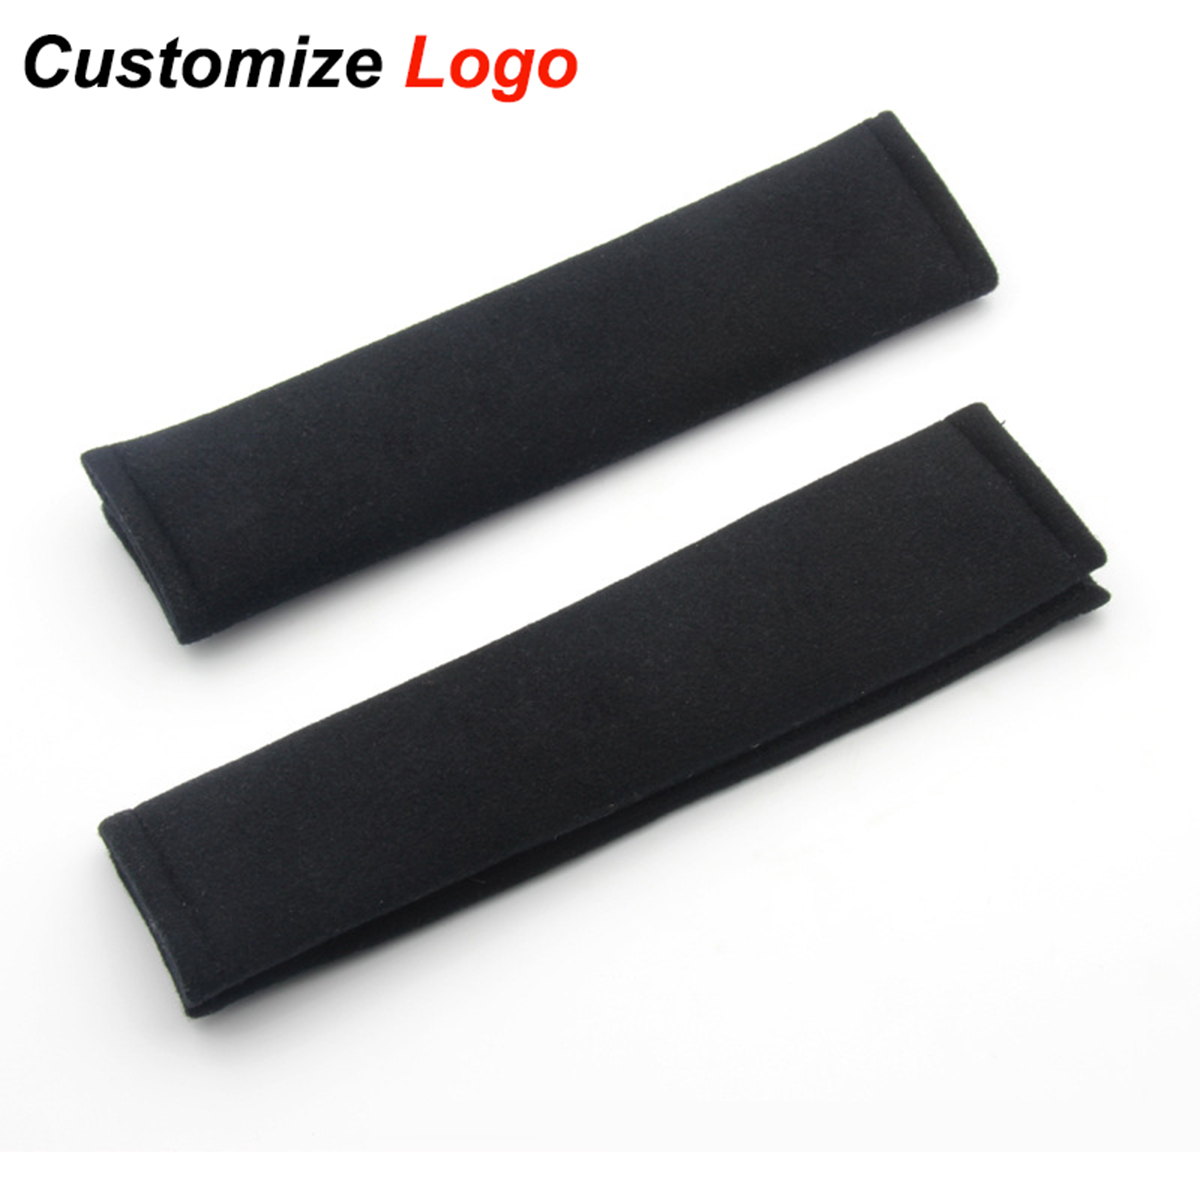 2X Car Styling Accessories Seat Belt Shoulders Pad Truck Cushion Cover for Volvo Ssangyong Seat Hyundai Mazda OPel with Logo